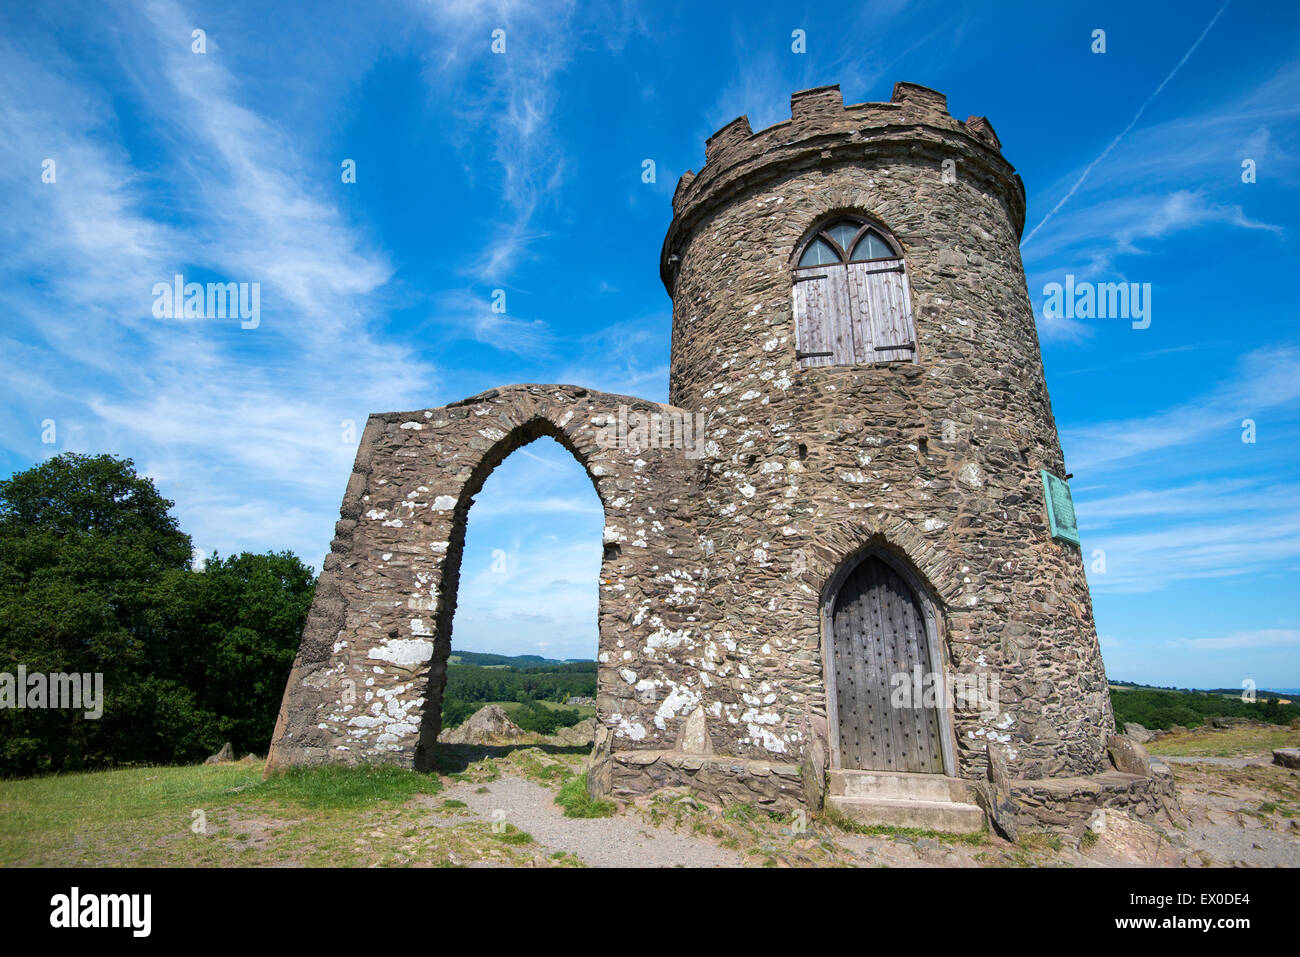 Old John Tower at Bradgate Park, Leicestershire England UK - Stock Image